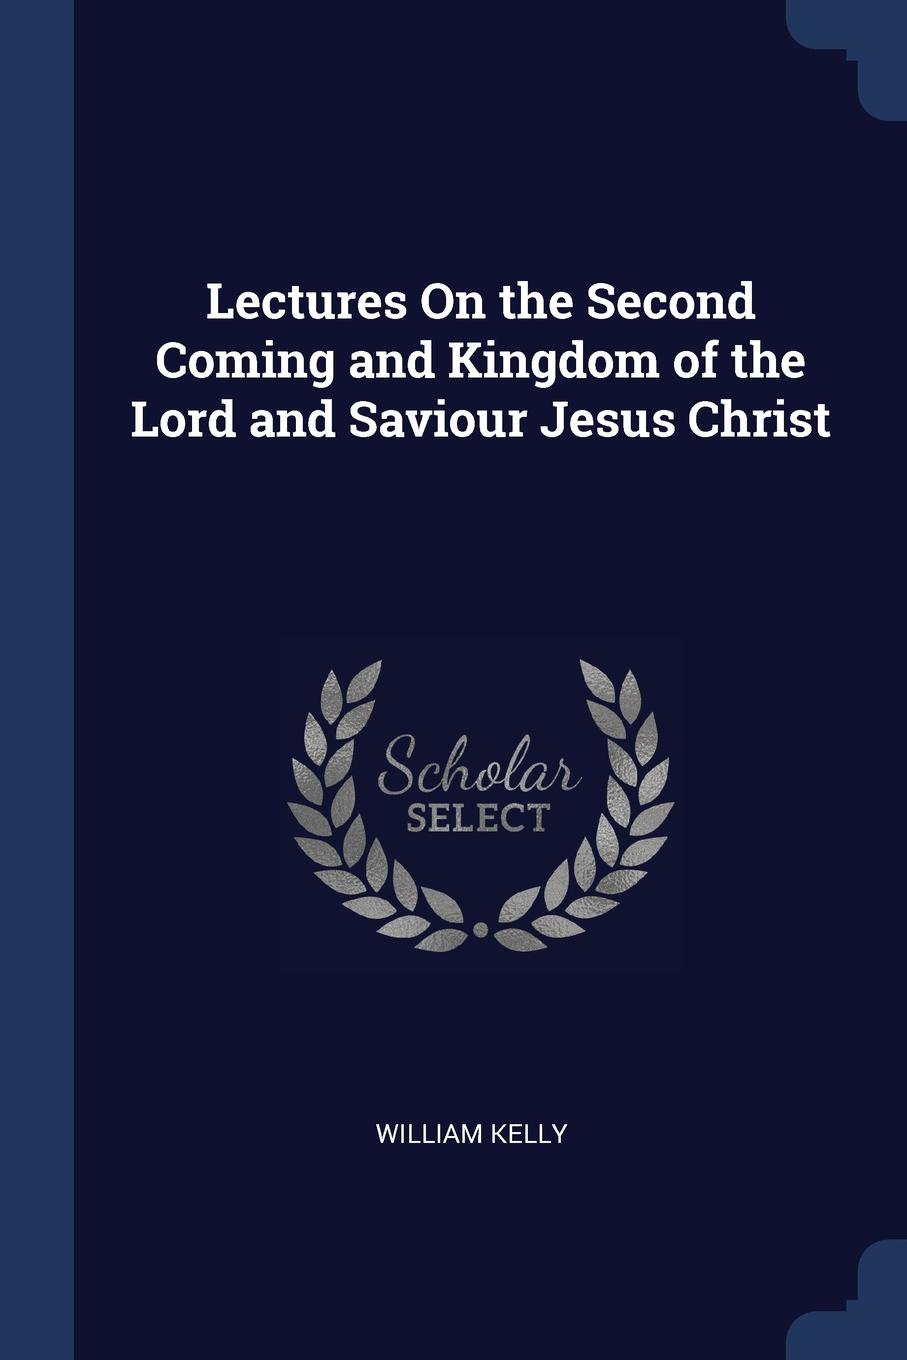 William Kelly Lectures On the Second Coming and Kingdom of Lord Saviour Jesus Christ